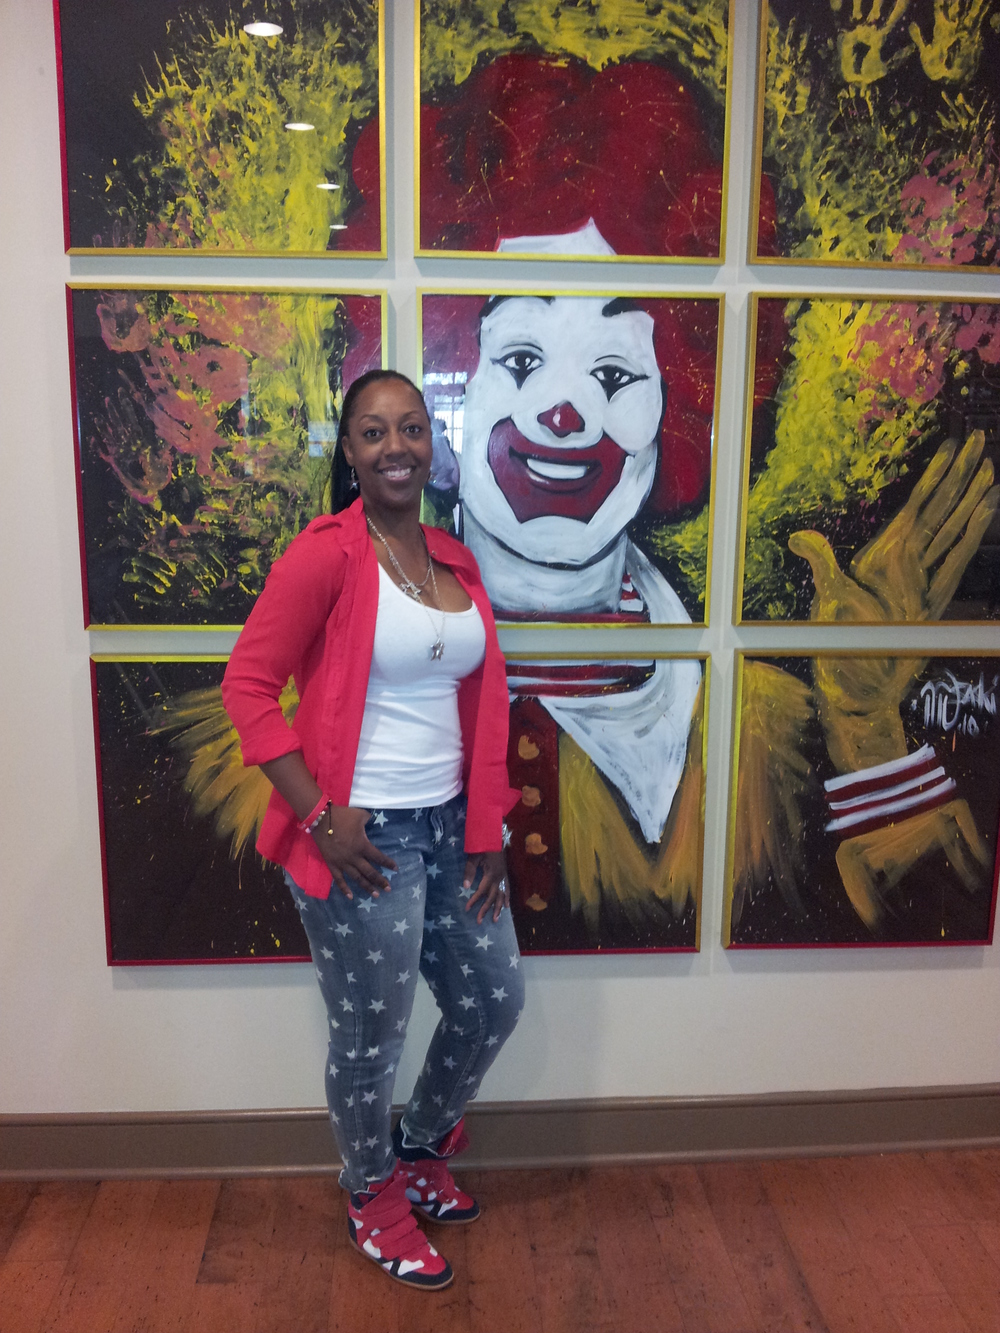 Tammie and Ronald McDonald Artpiece